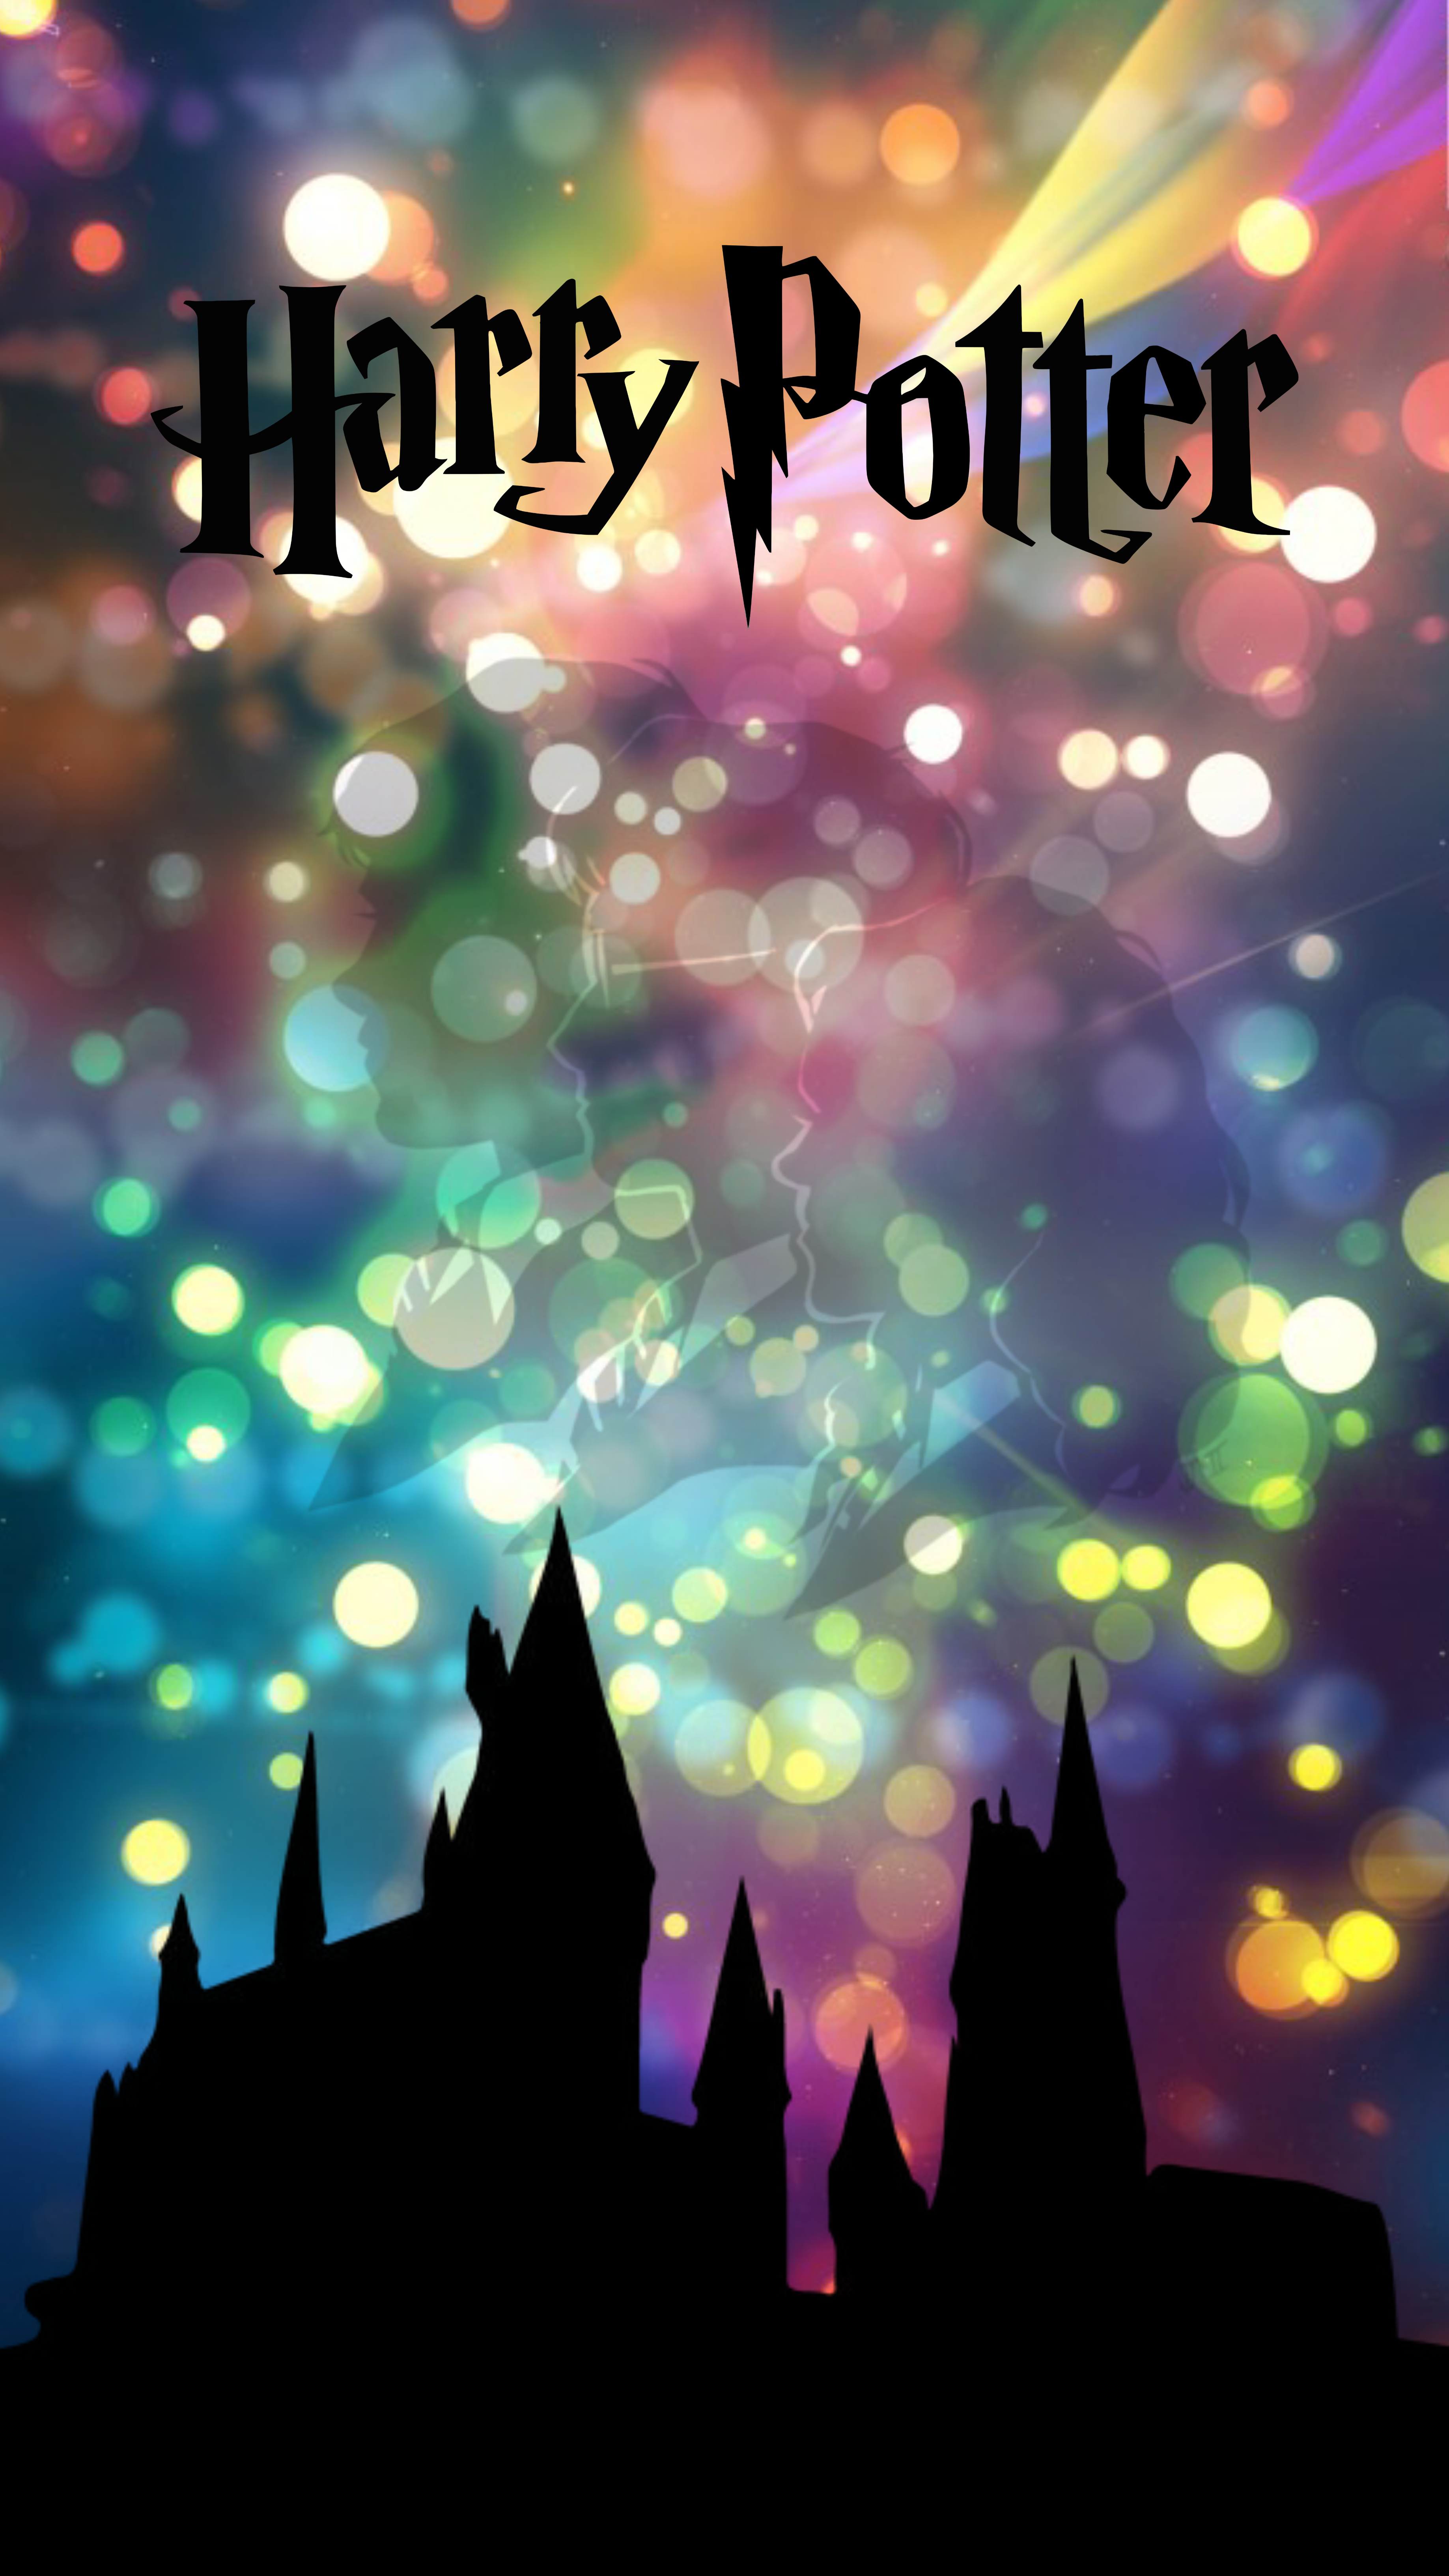 Harry Potter Iphone Wallpaper Made By Beth Mckee Harry Potter